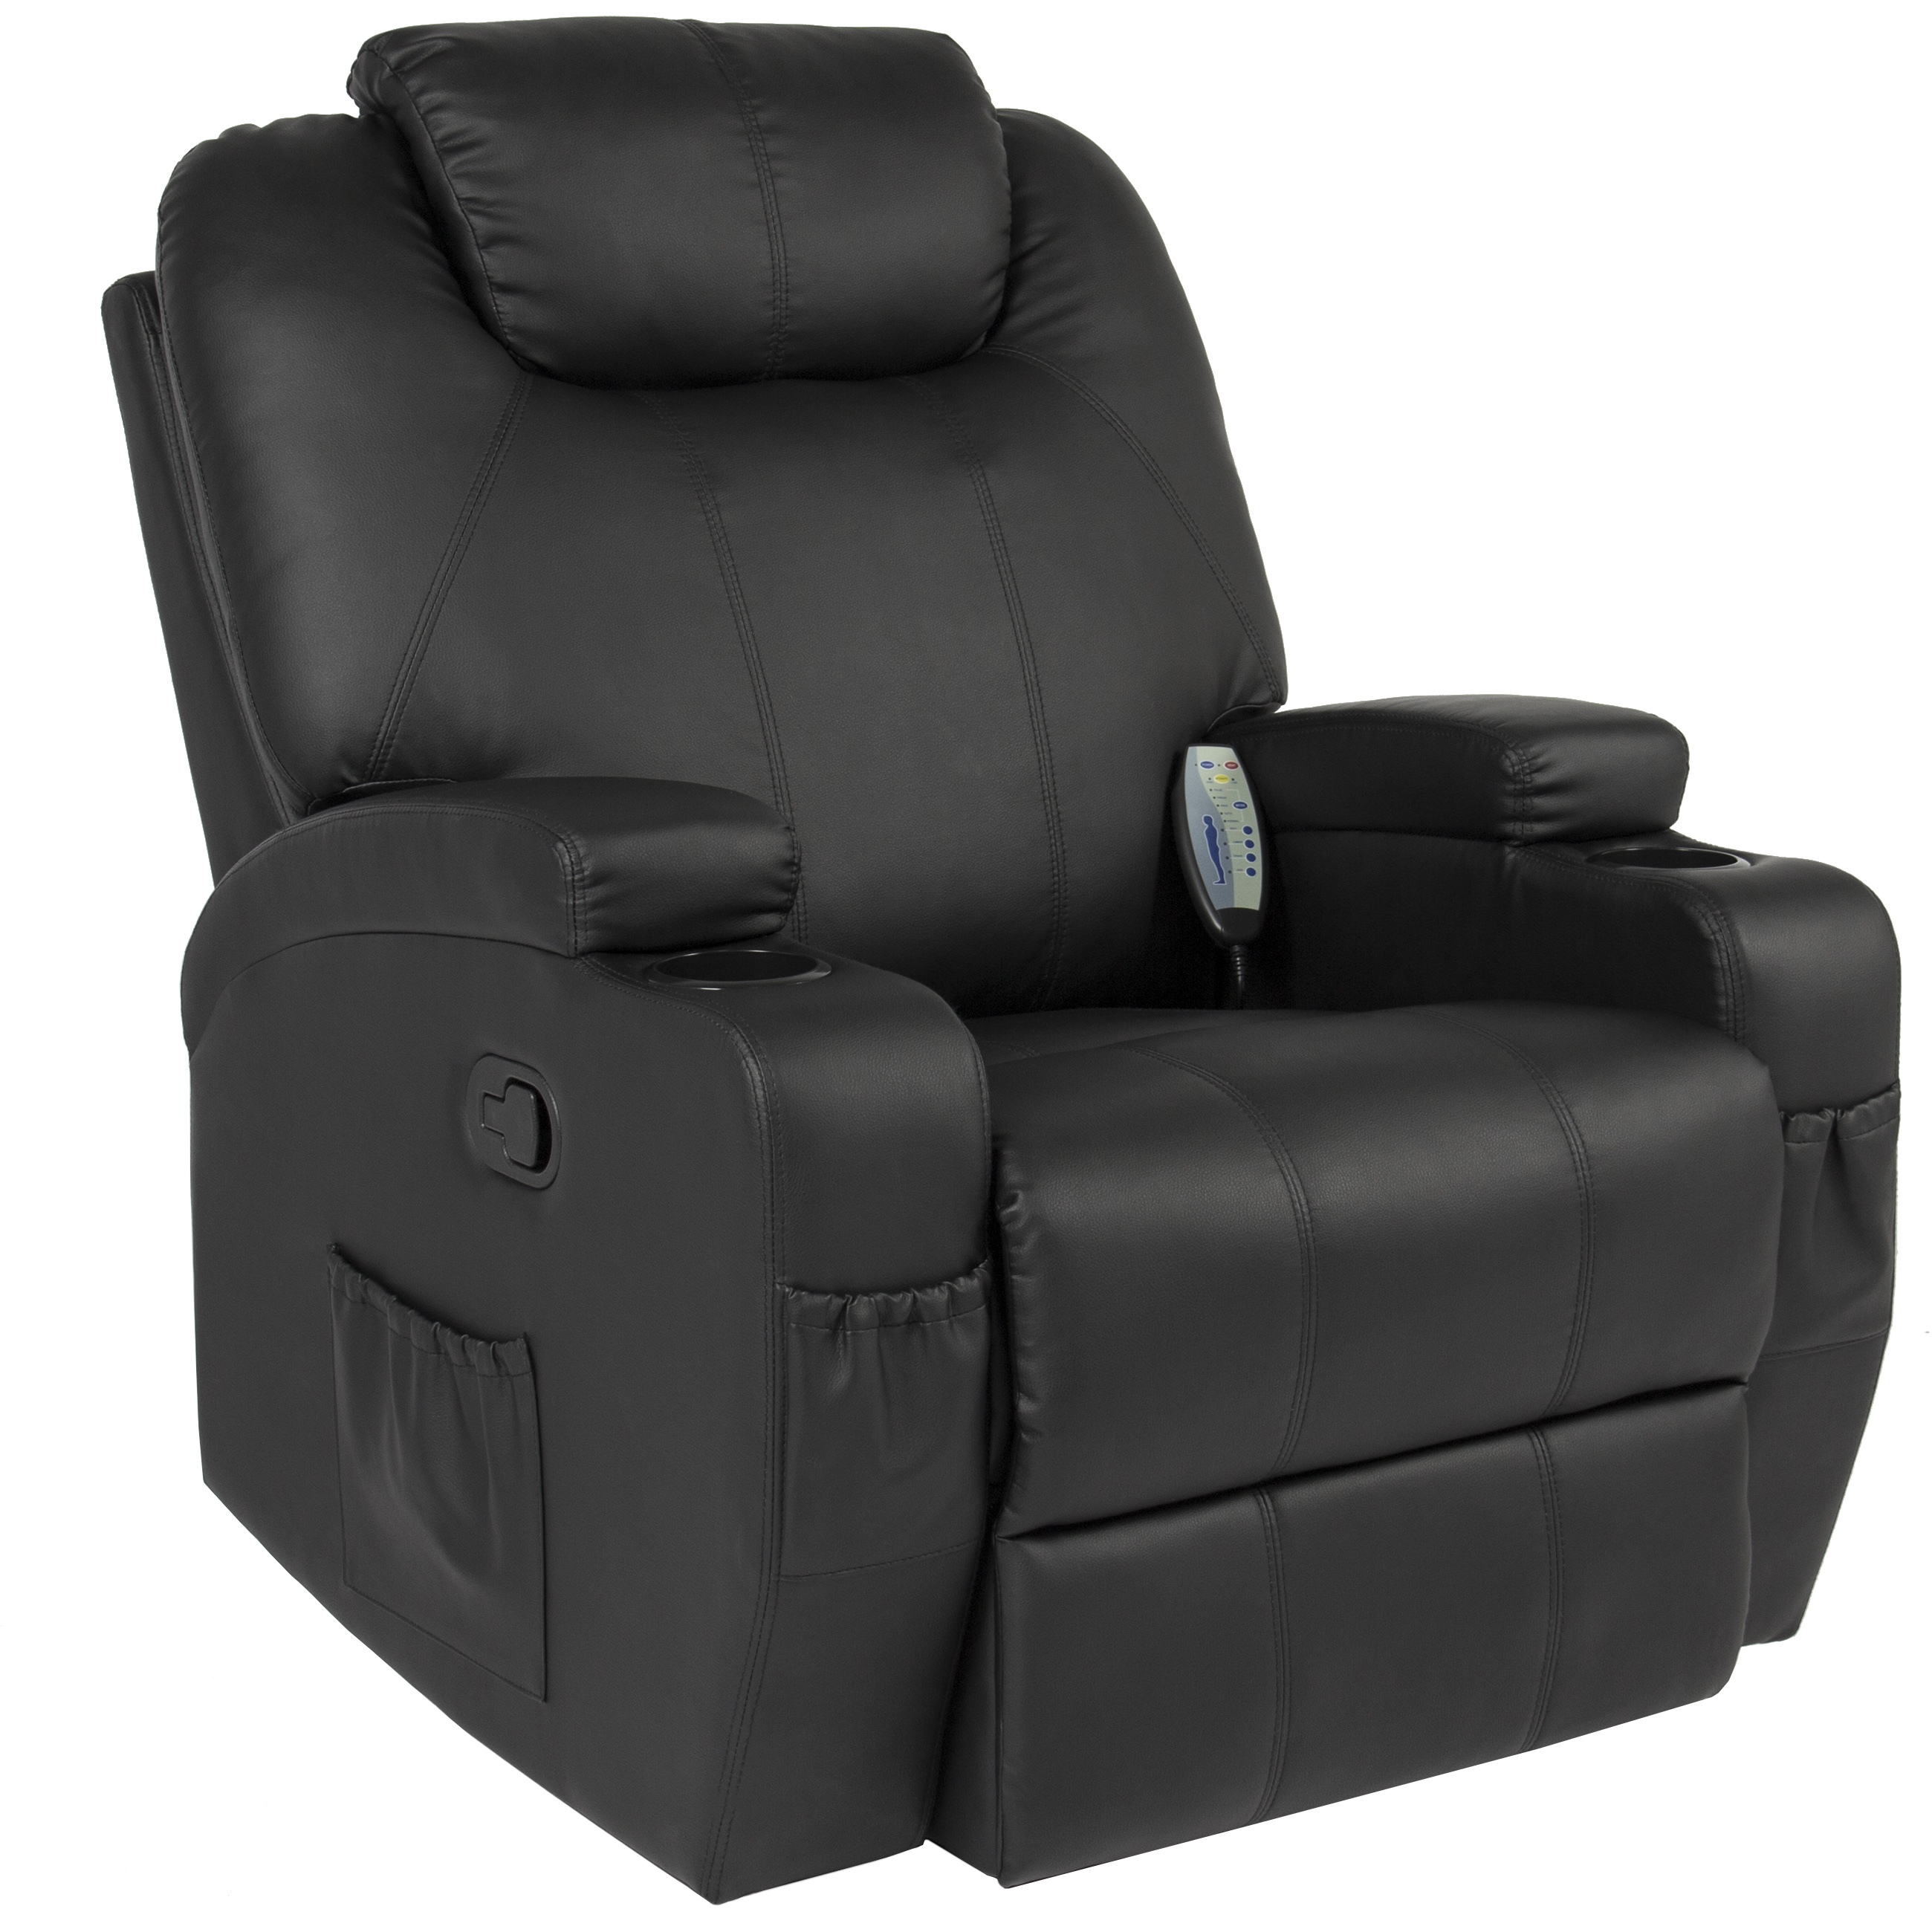 Best Choice Products Massage Recliner Sofa Chair Heated W/Control Ergonomic Executive Couch Lounge Bk